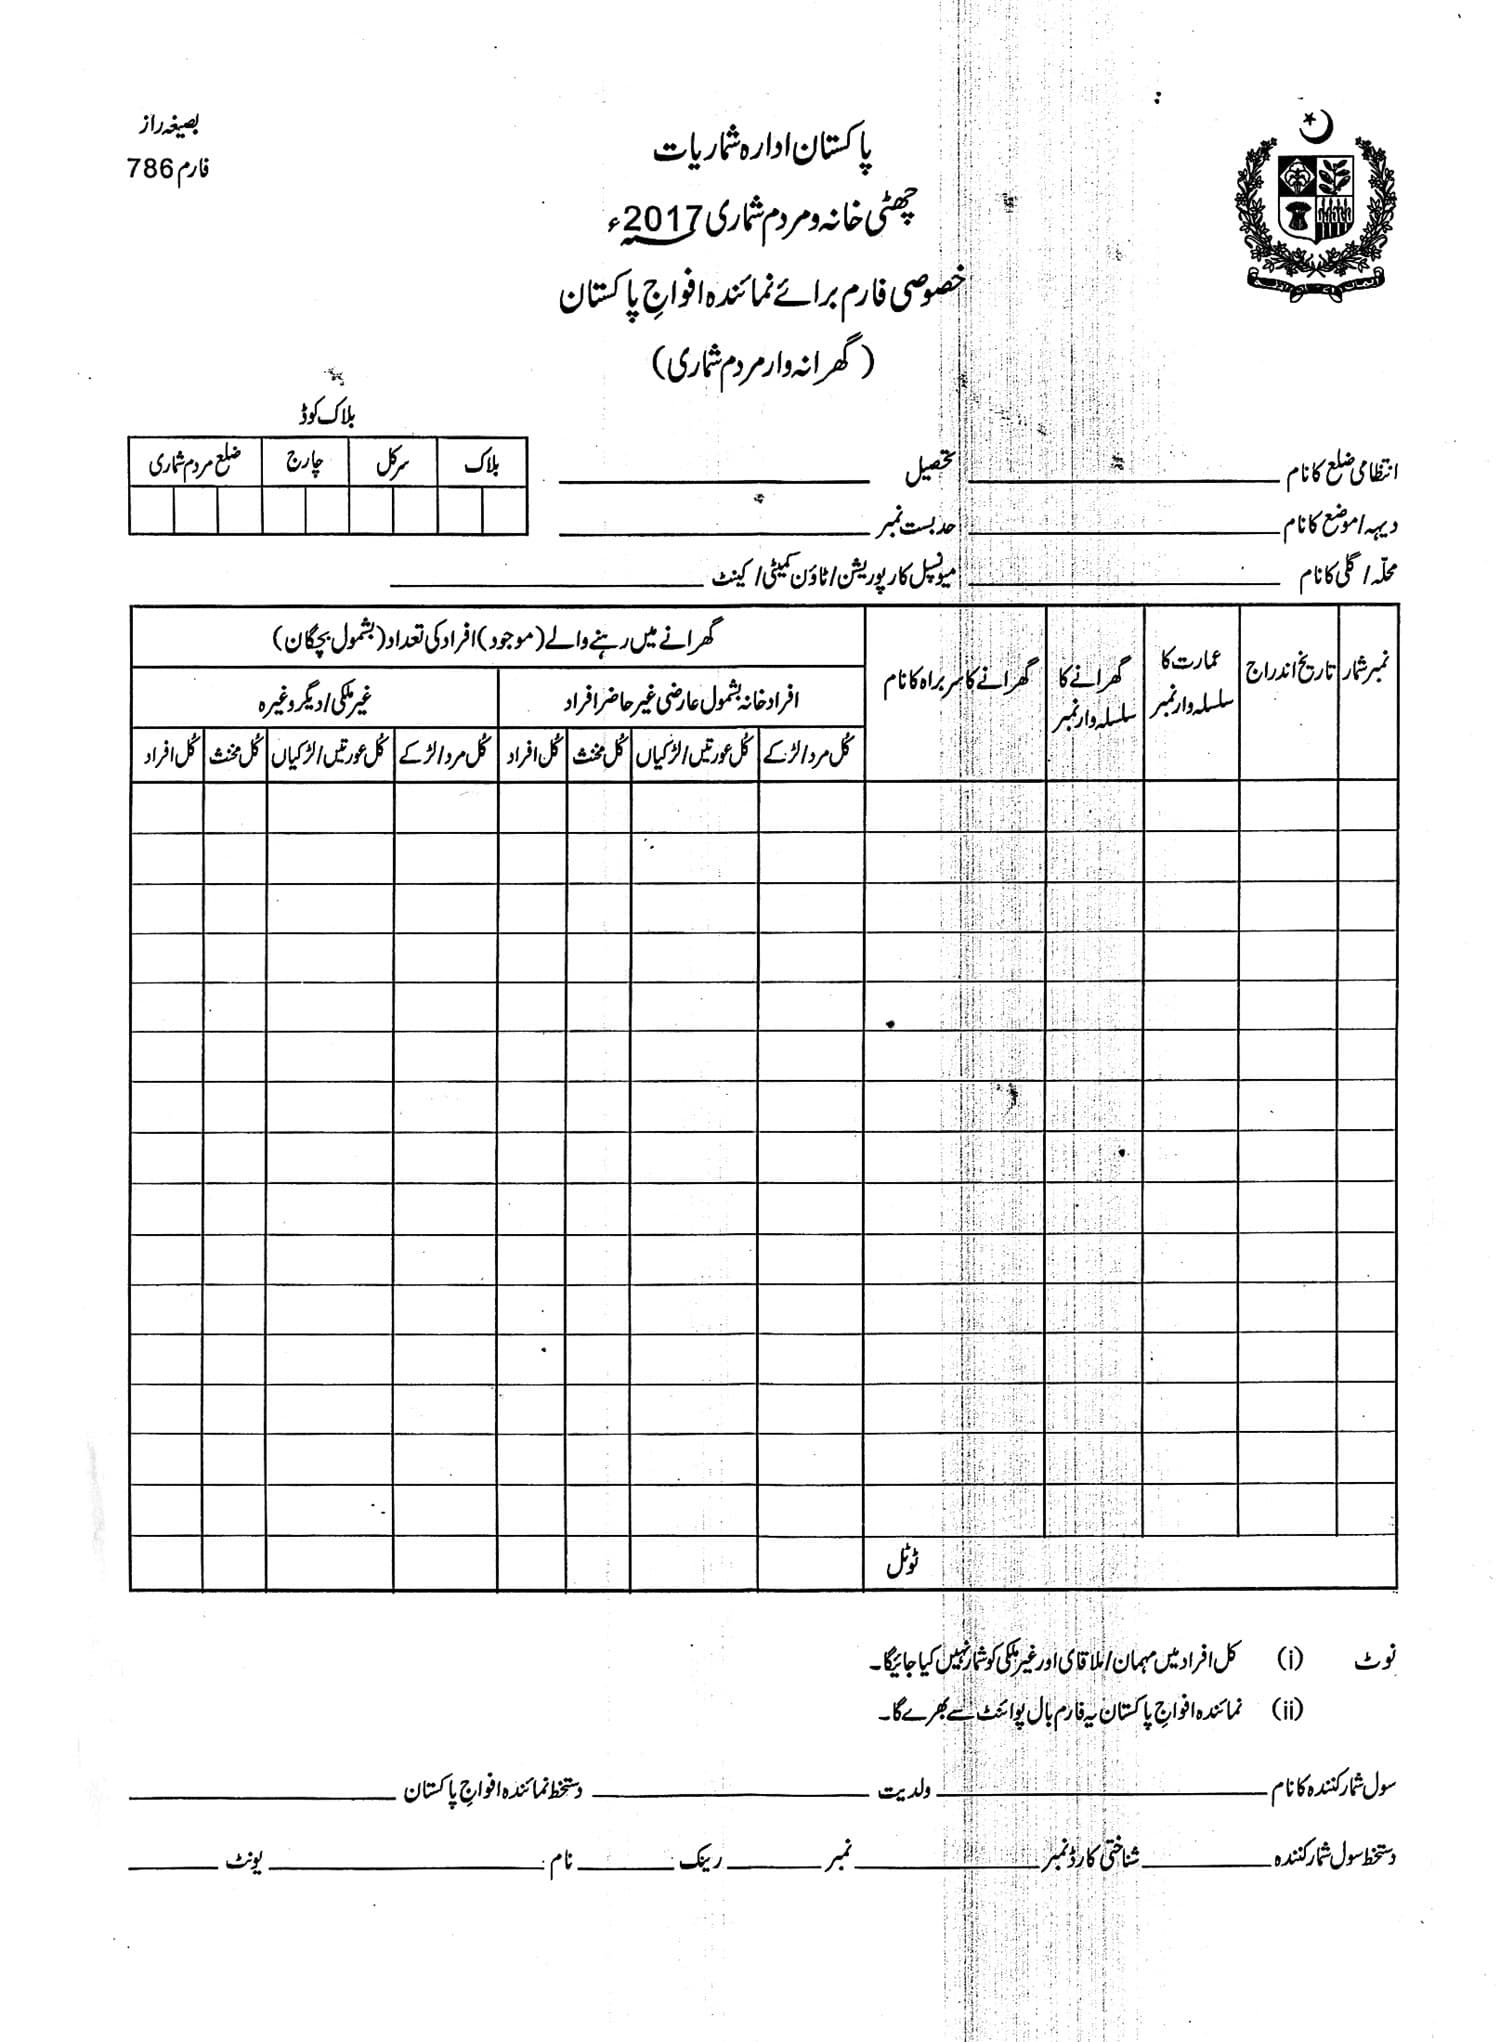 Form to be completed by the army.